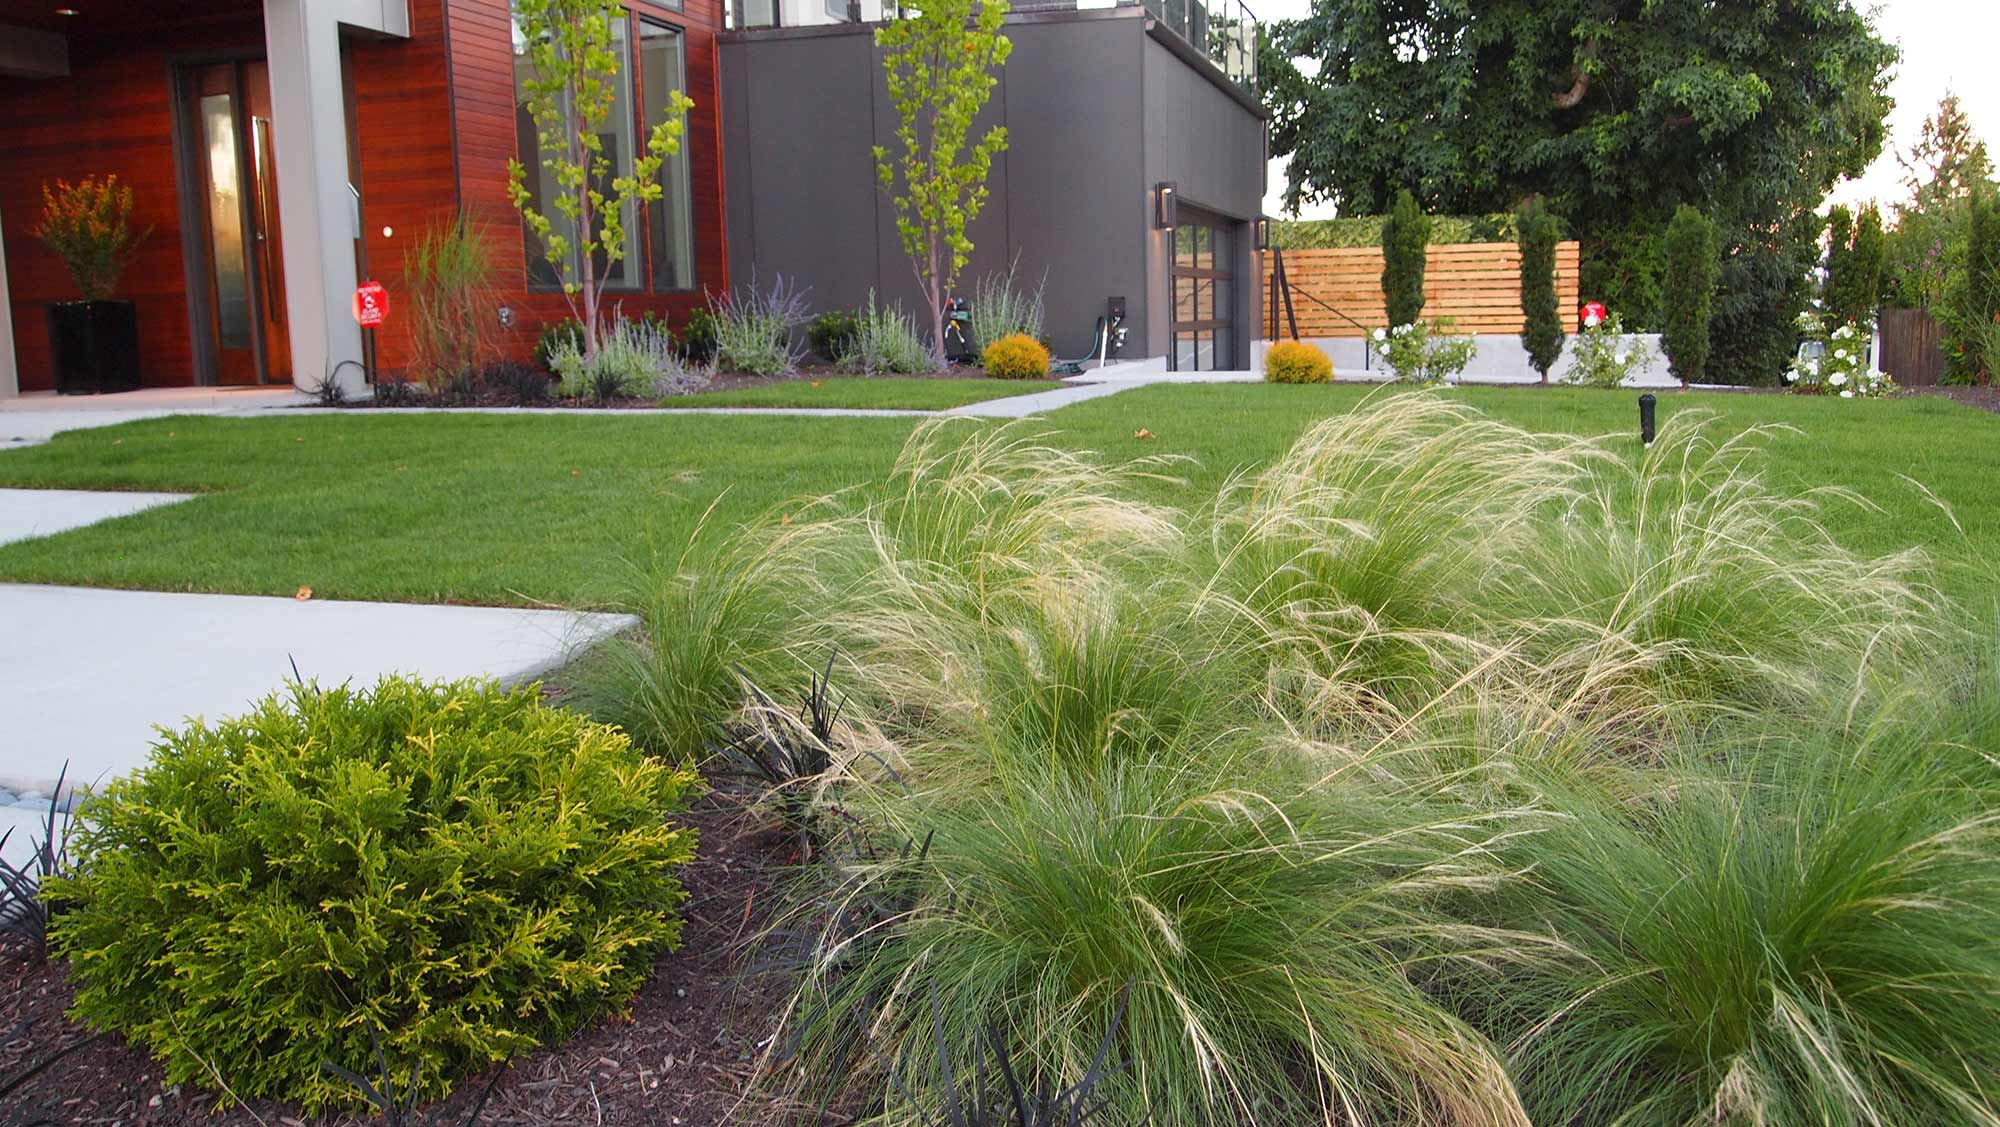 GRASSES TO CREATE MOVEMENT AND SOFTNESS